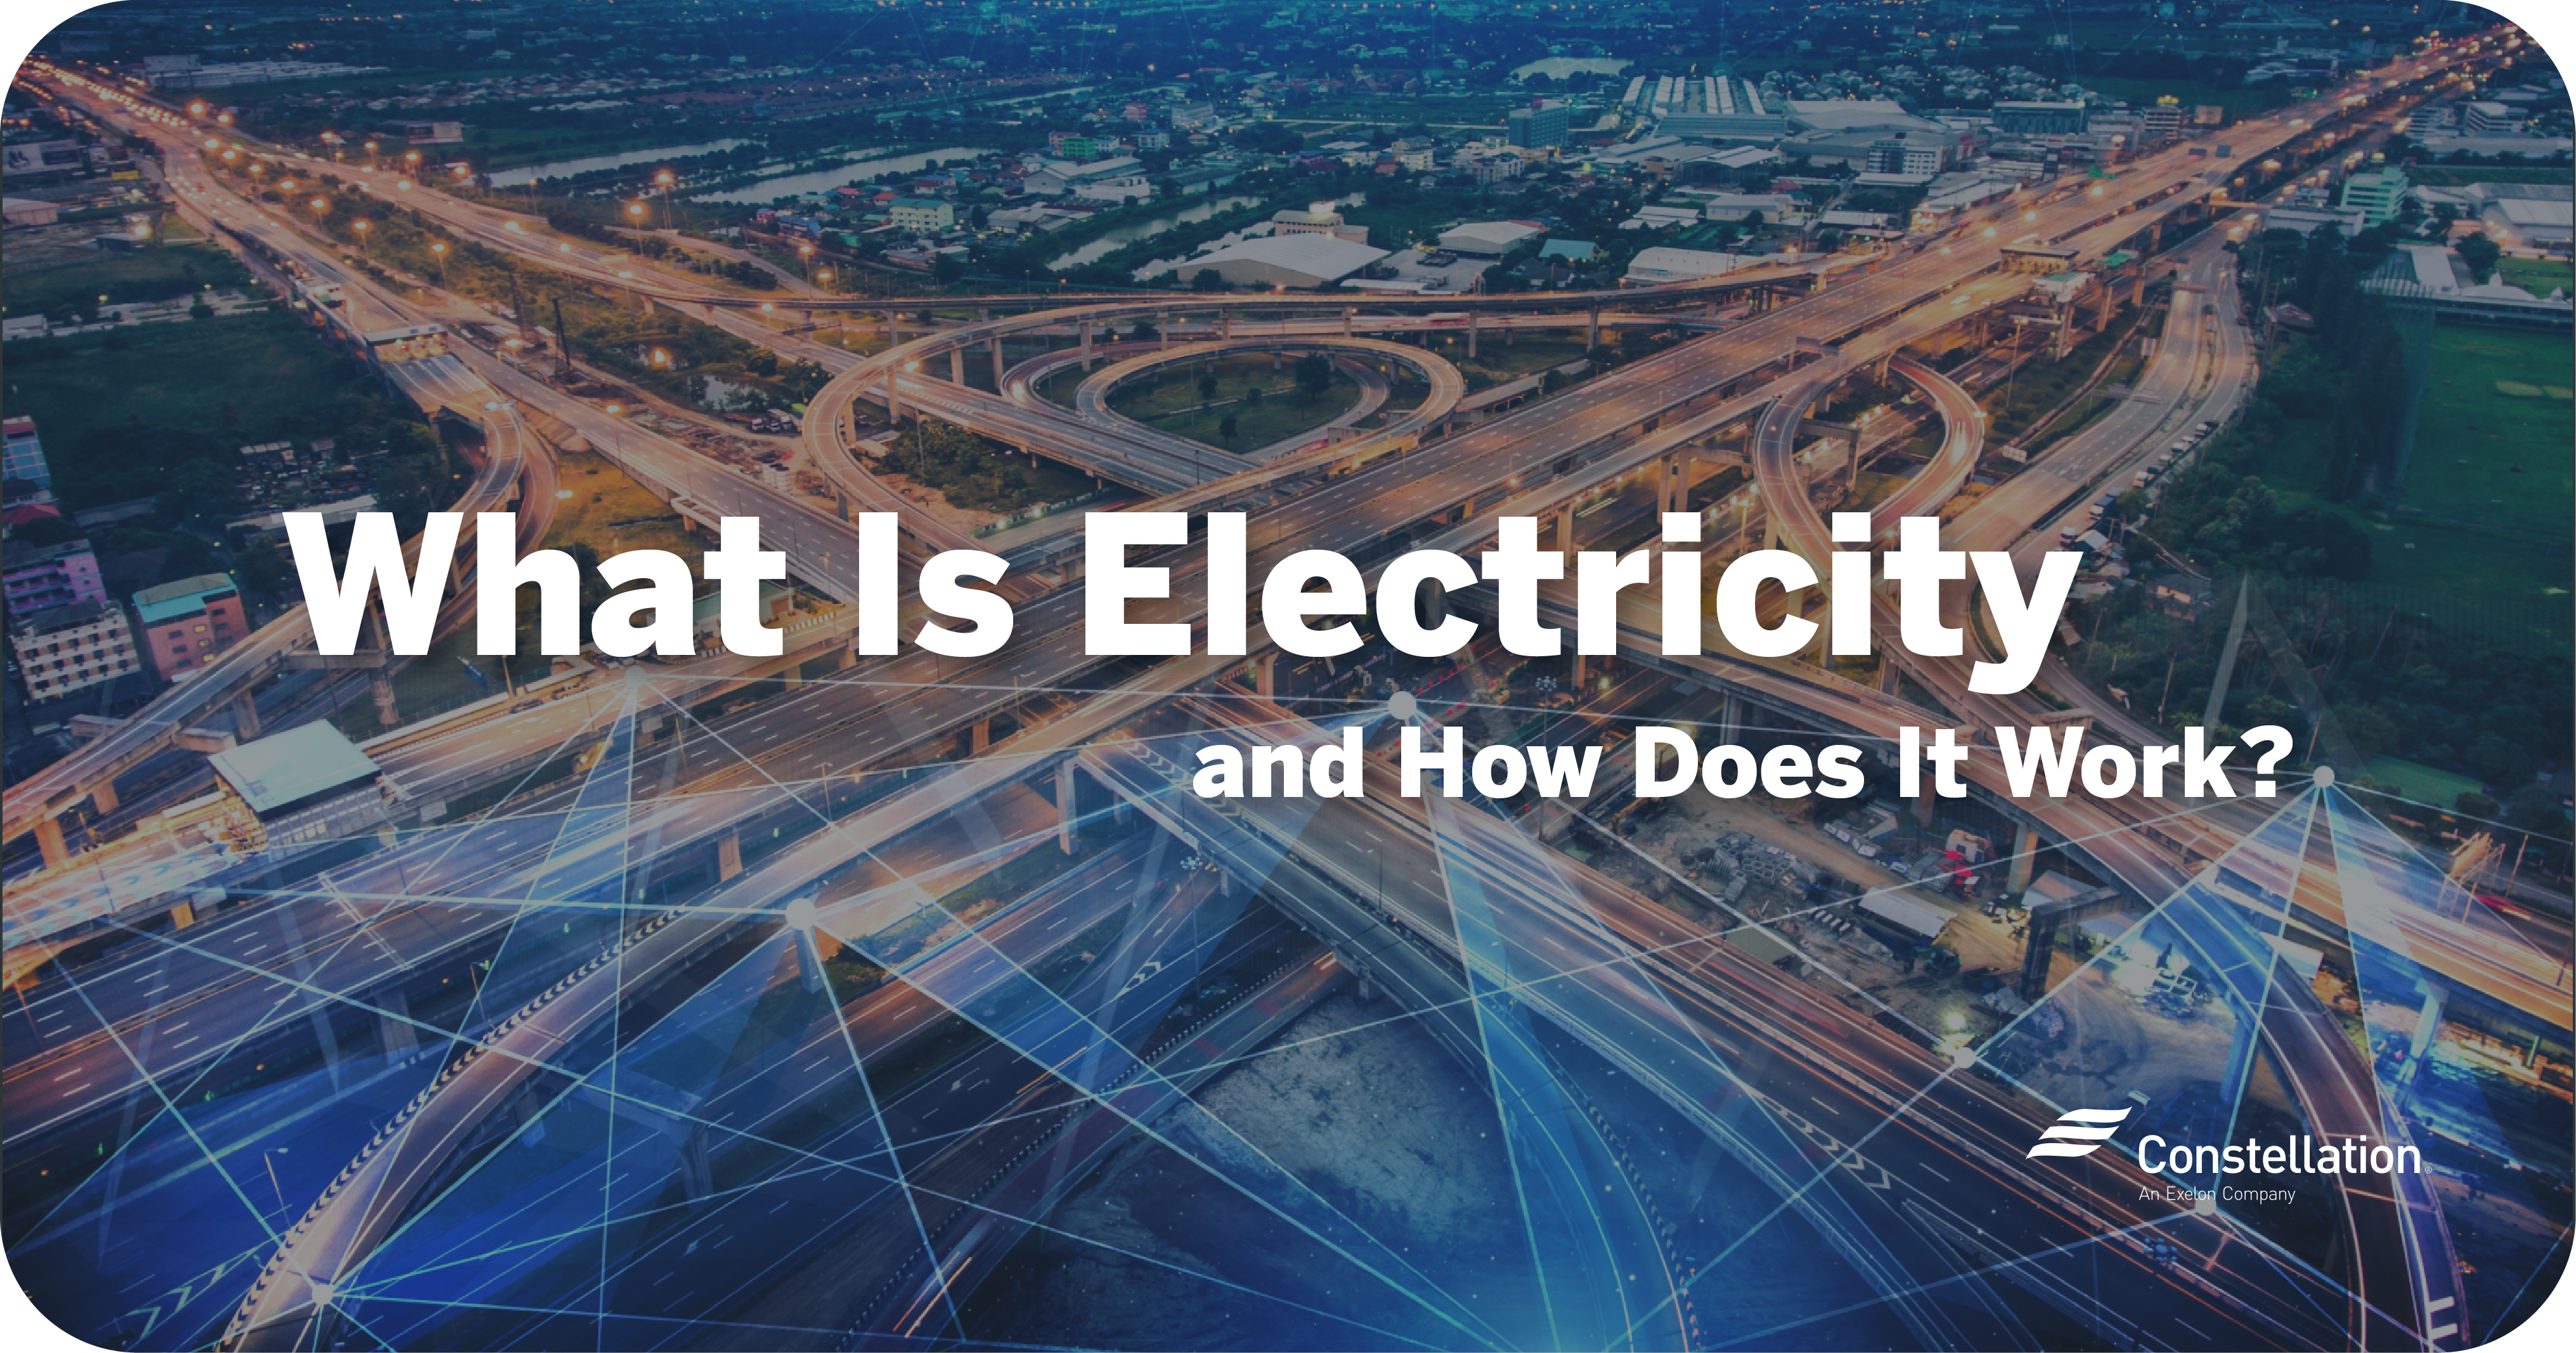 What is electricity and how does it work?